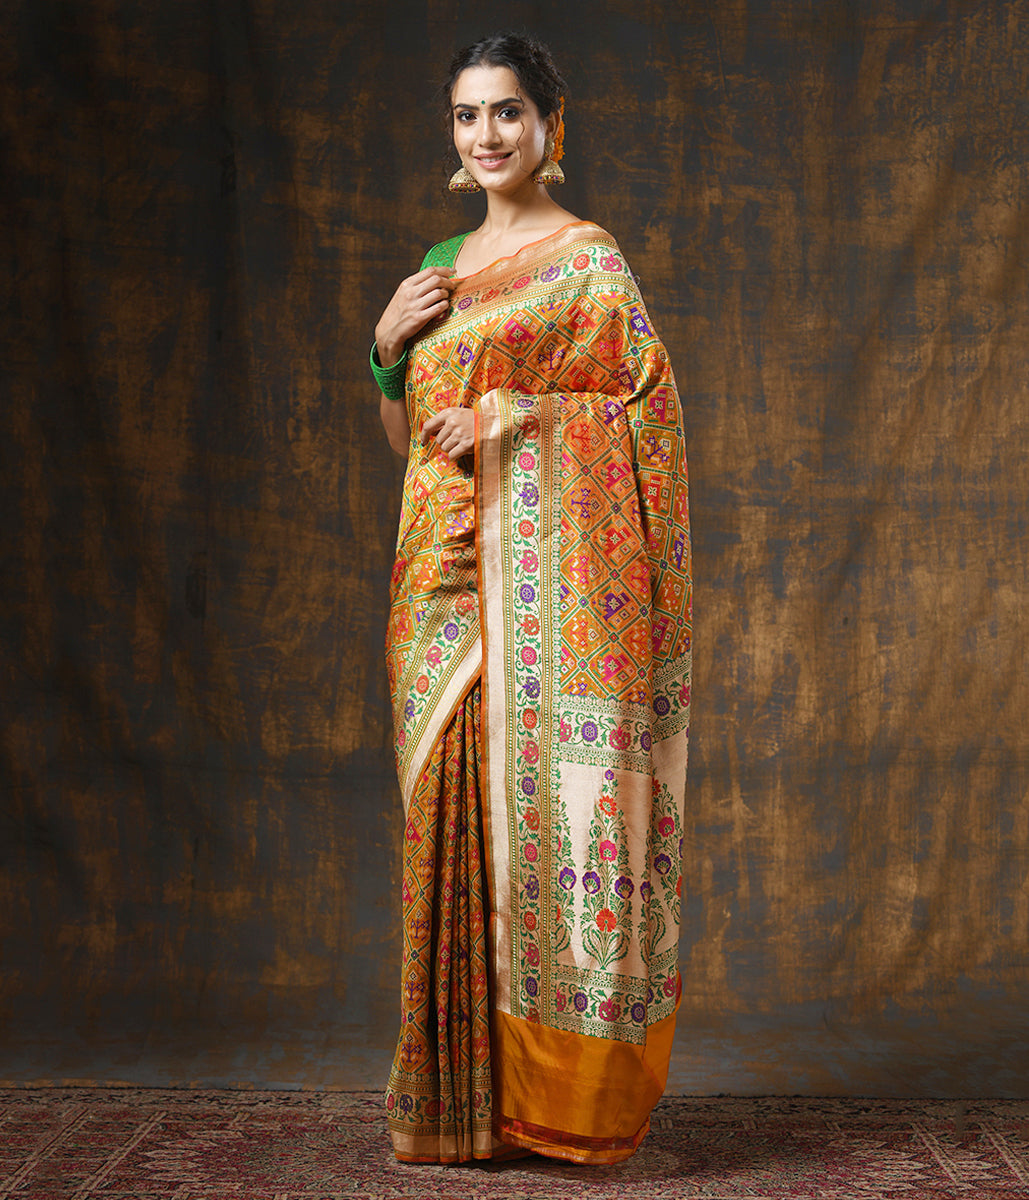 Handwoven Yellow and Red Dual Tone Meenakari Banarasi Patola